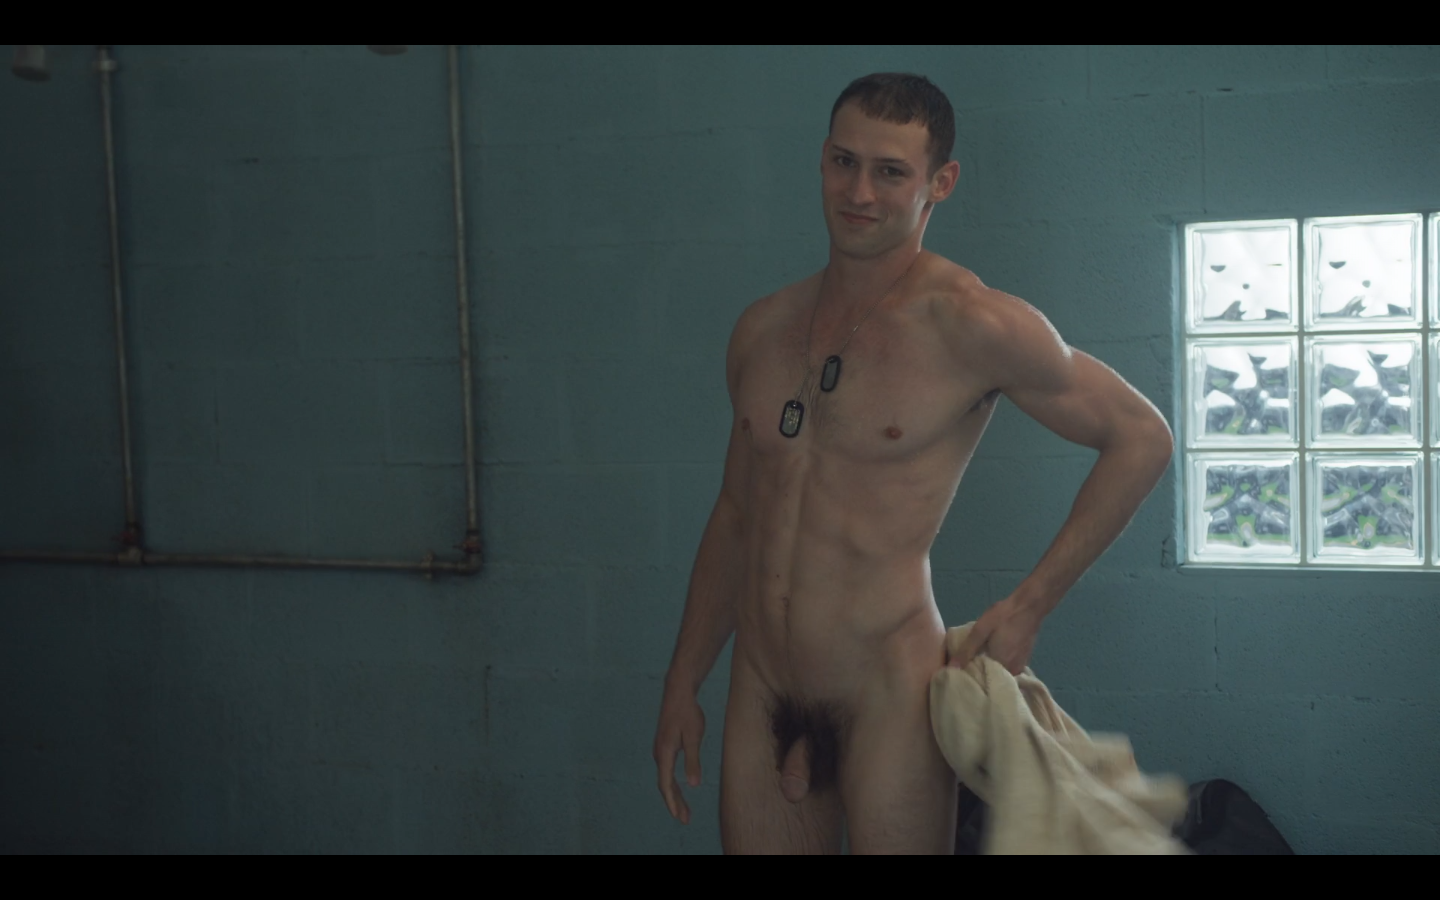 Male celeb naked The most